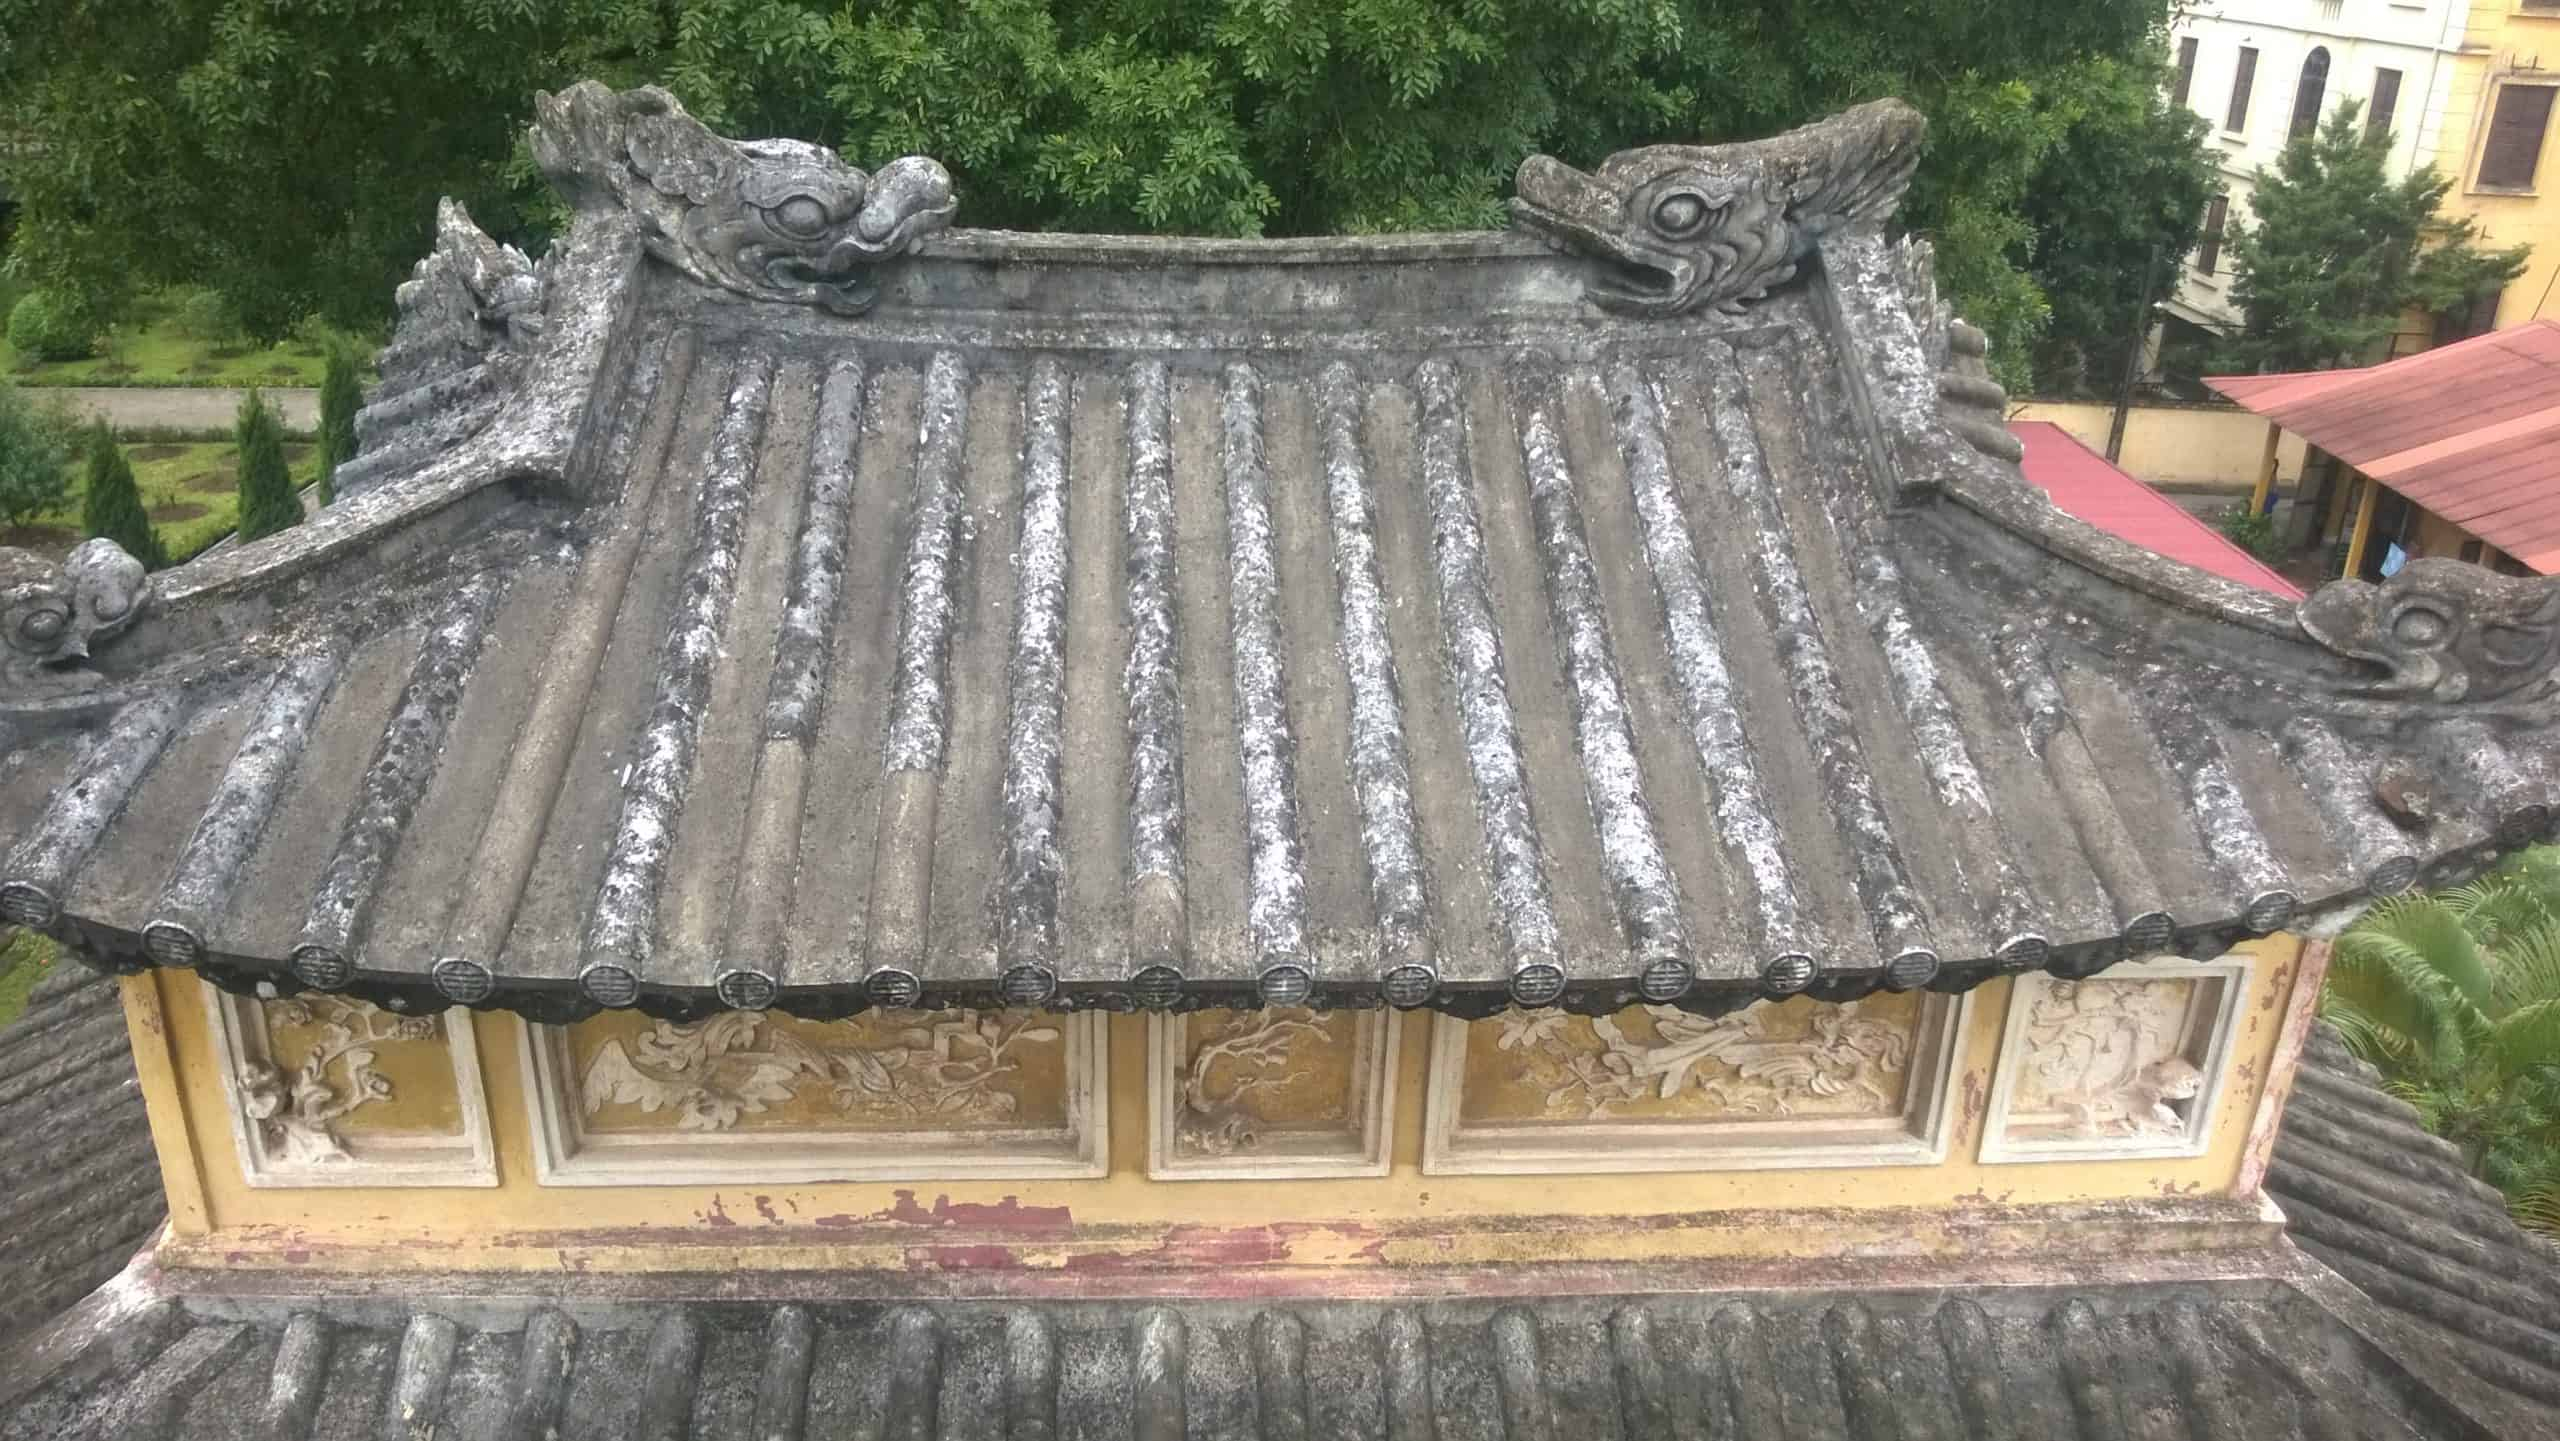 Rooftop of Kinh Thien palace